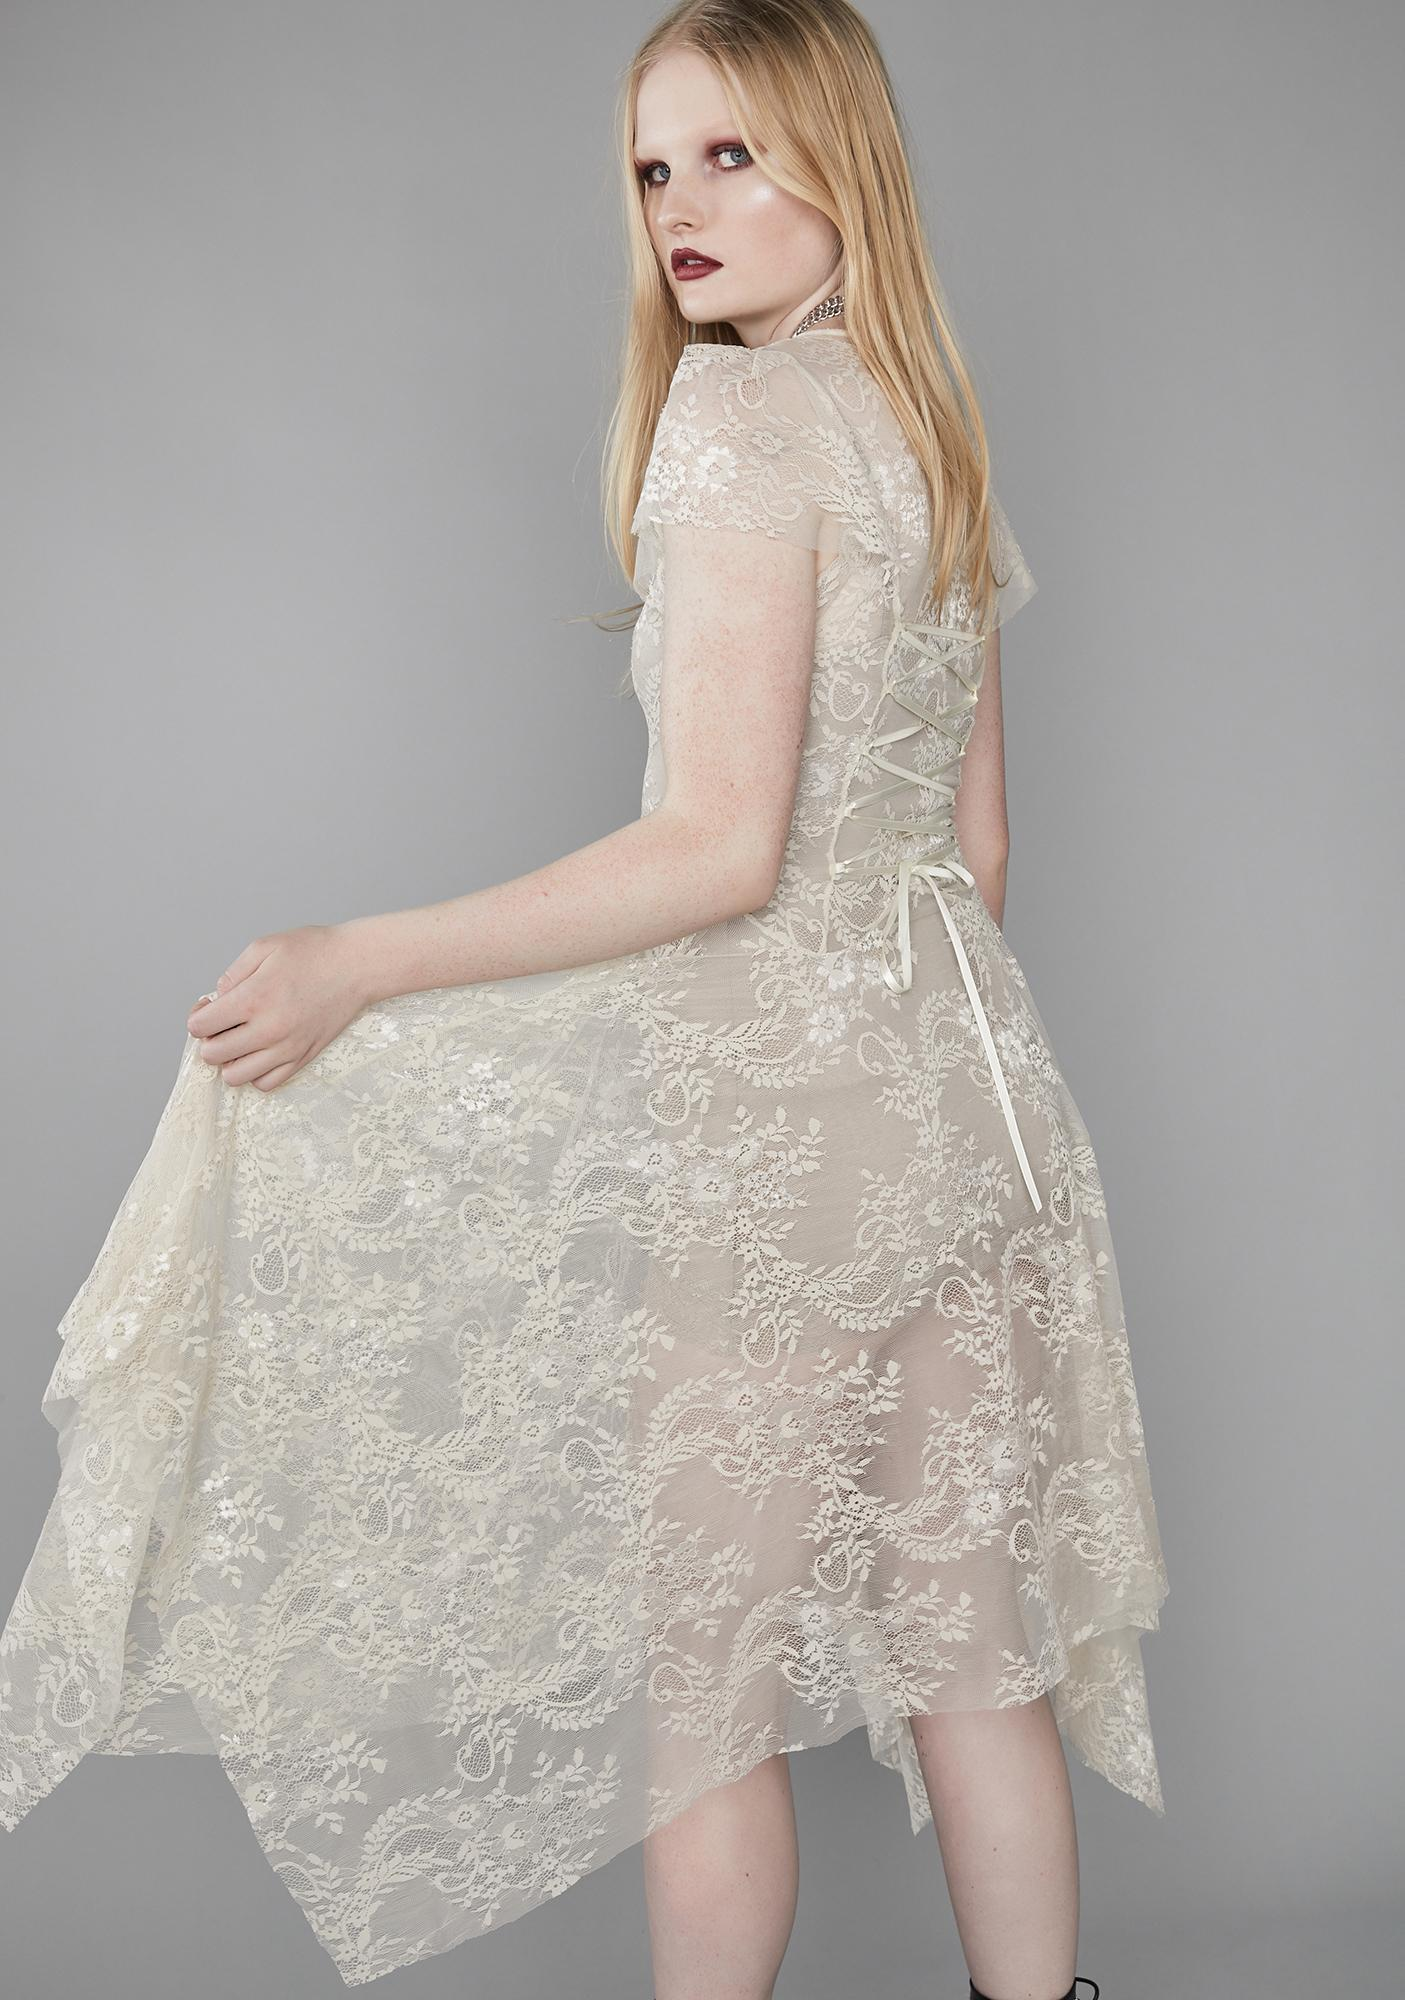 Widow Dearly Departed Lace Dress